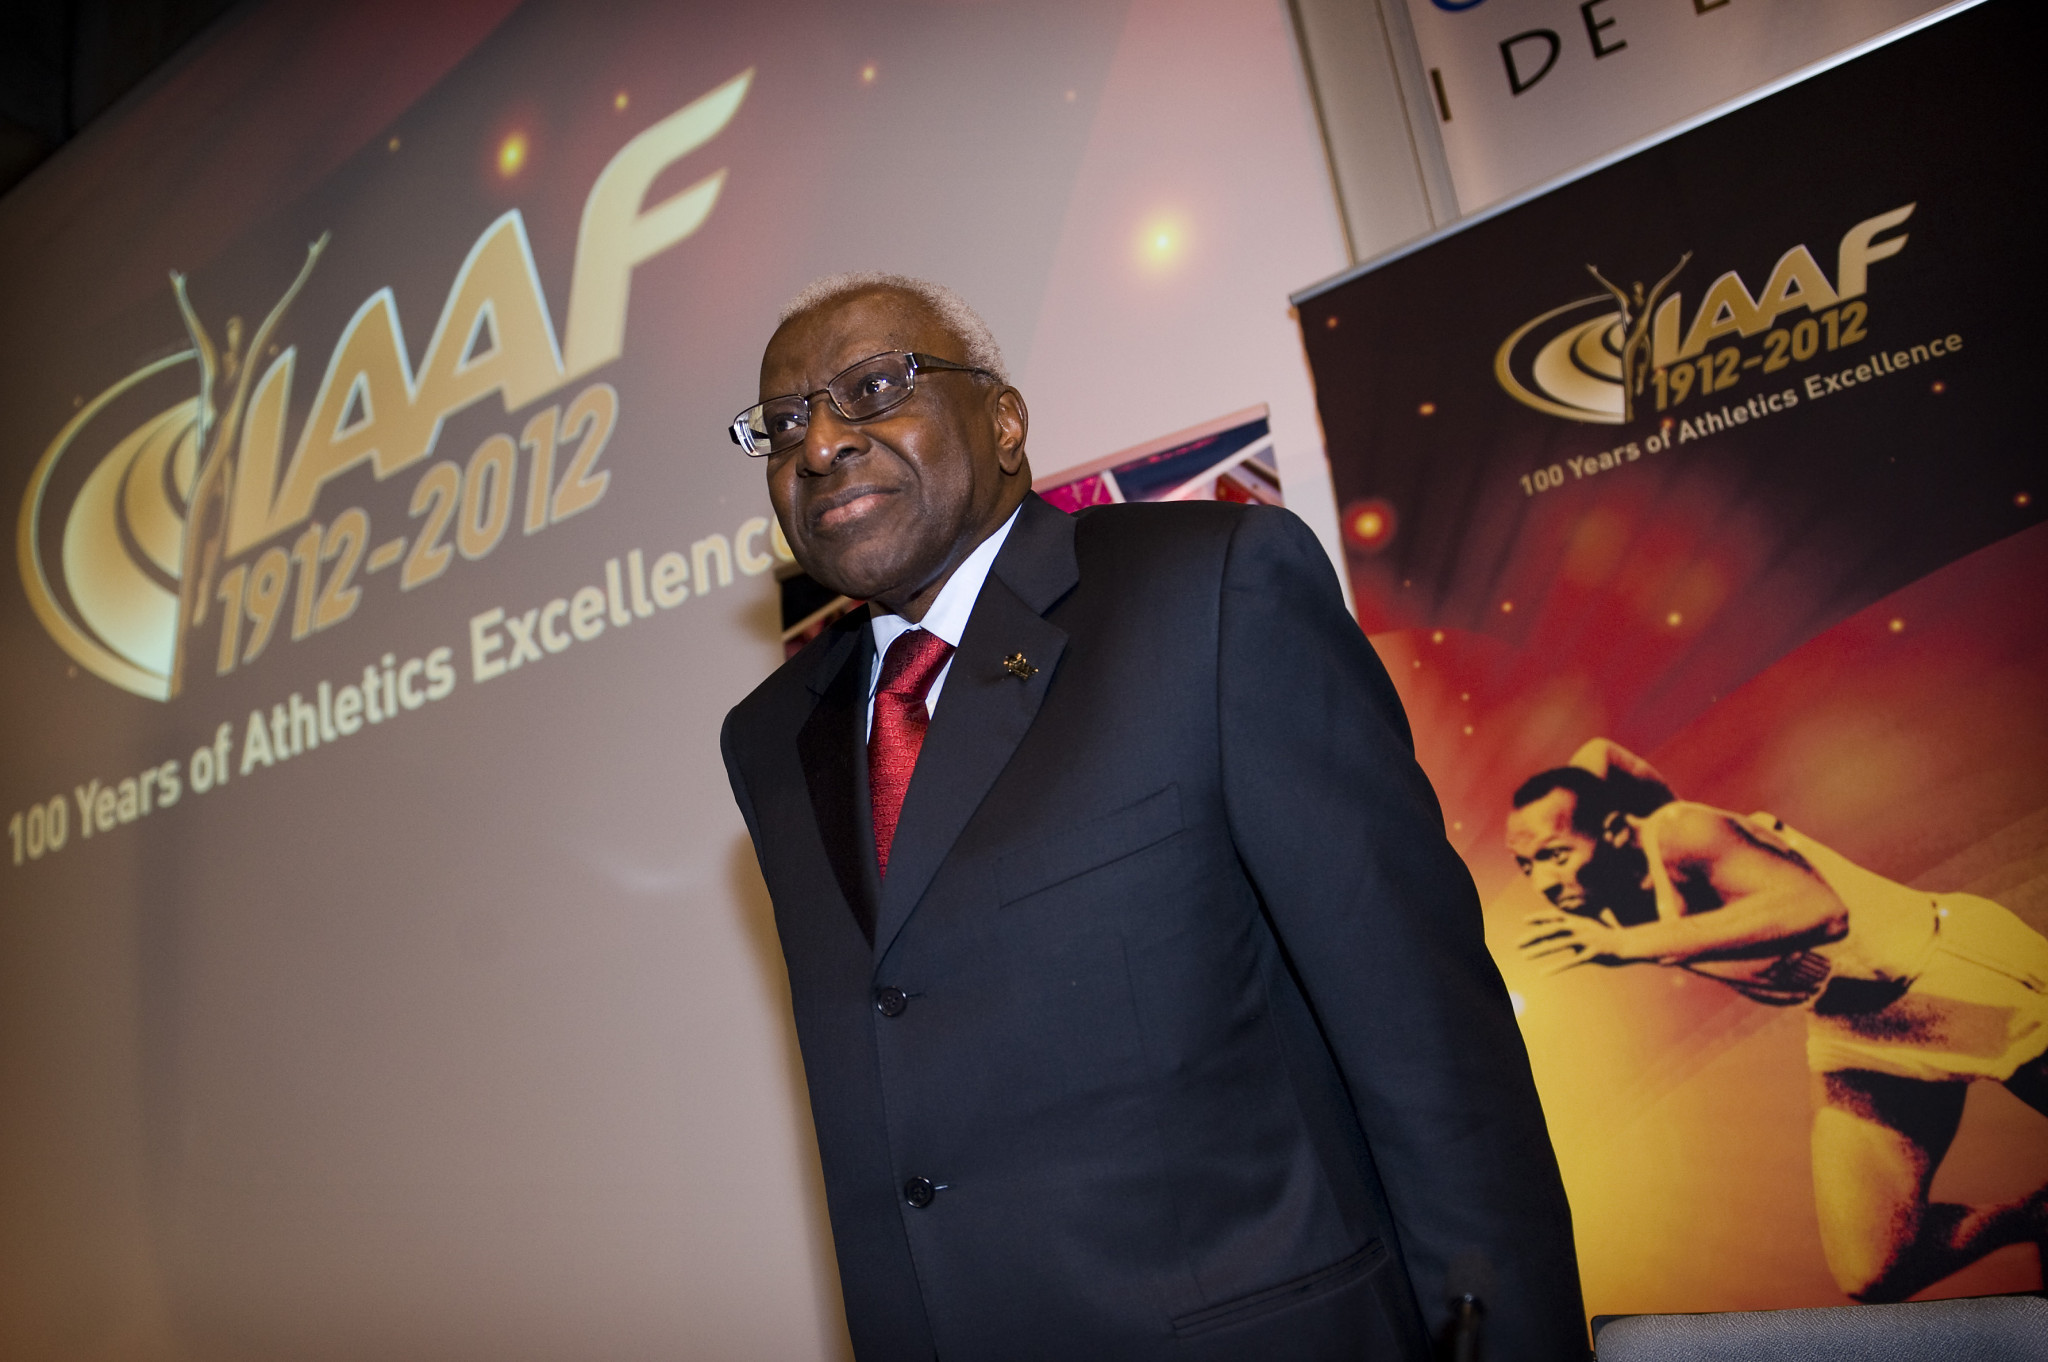 Lamine Diack led what is now World Athletics for 15 years ©Getty Images